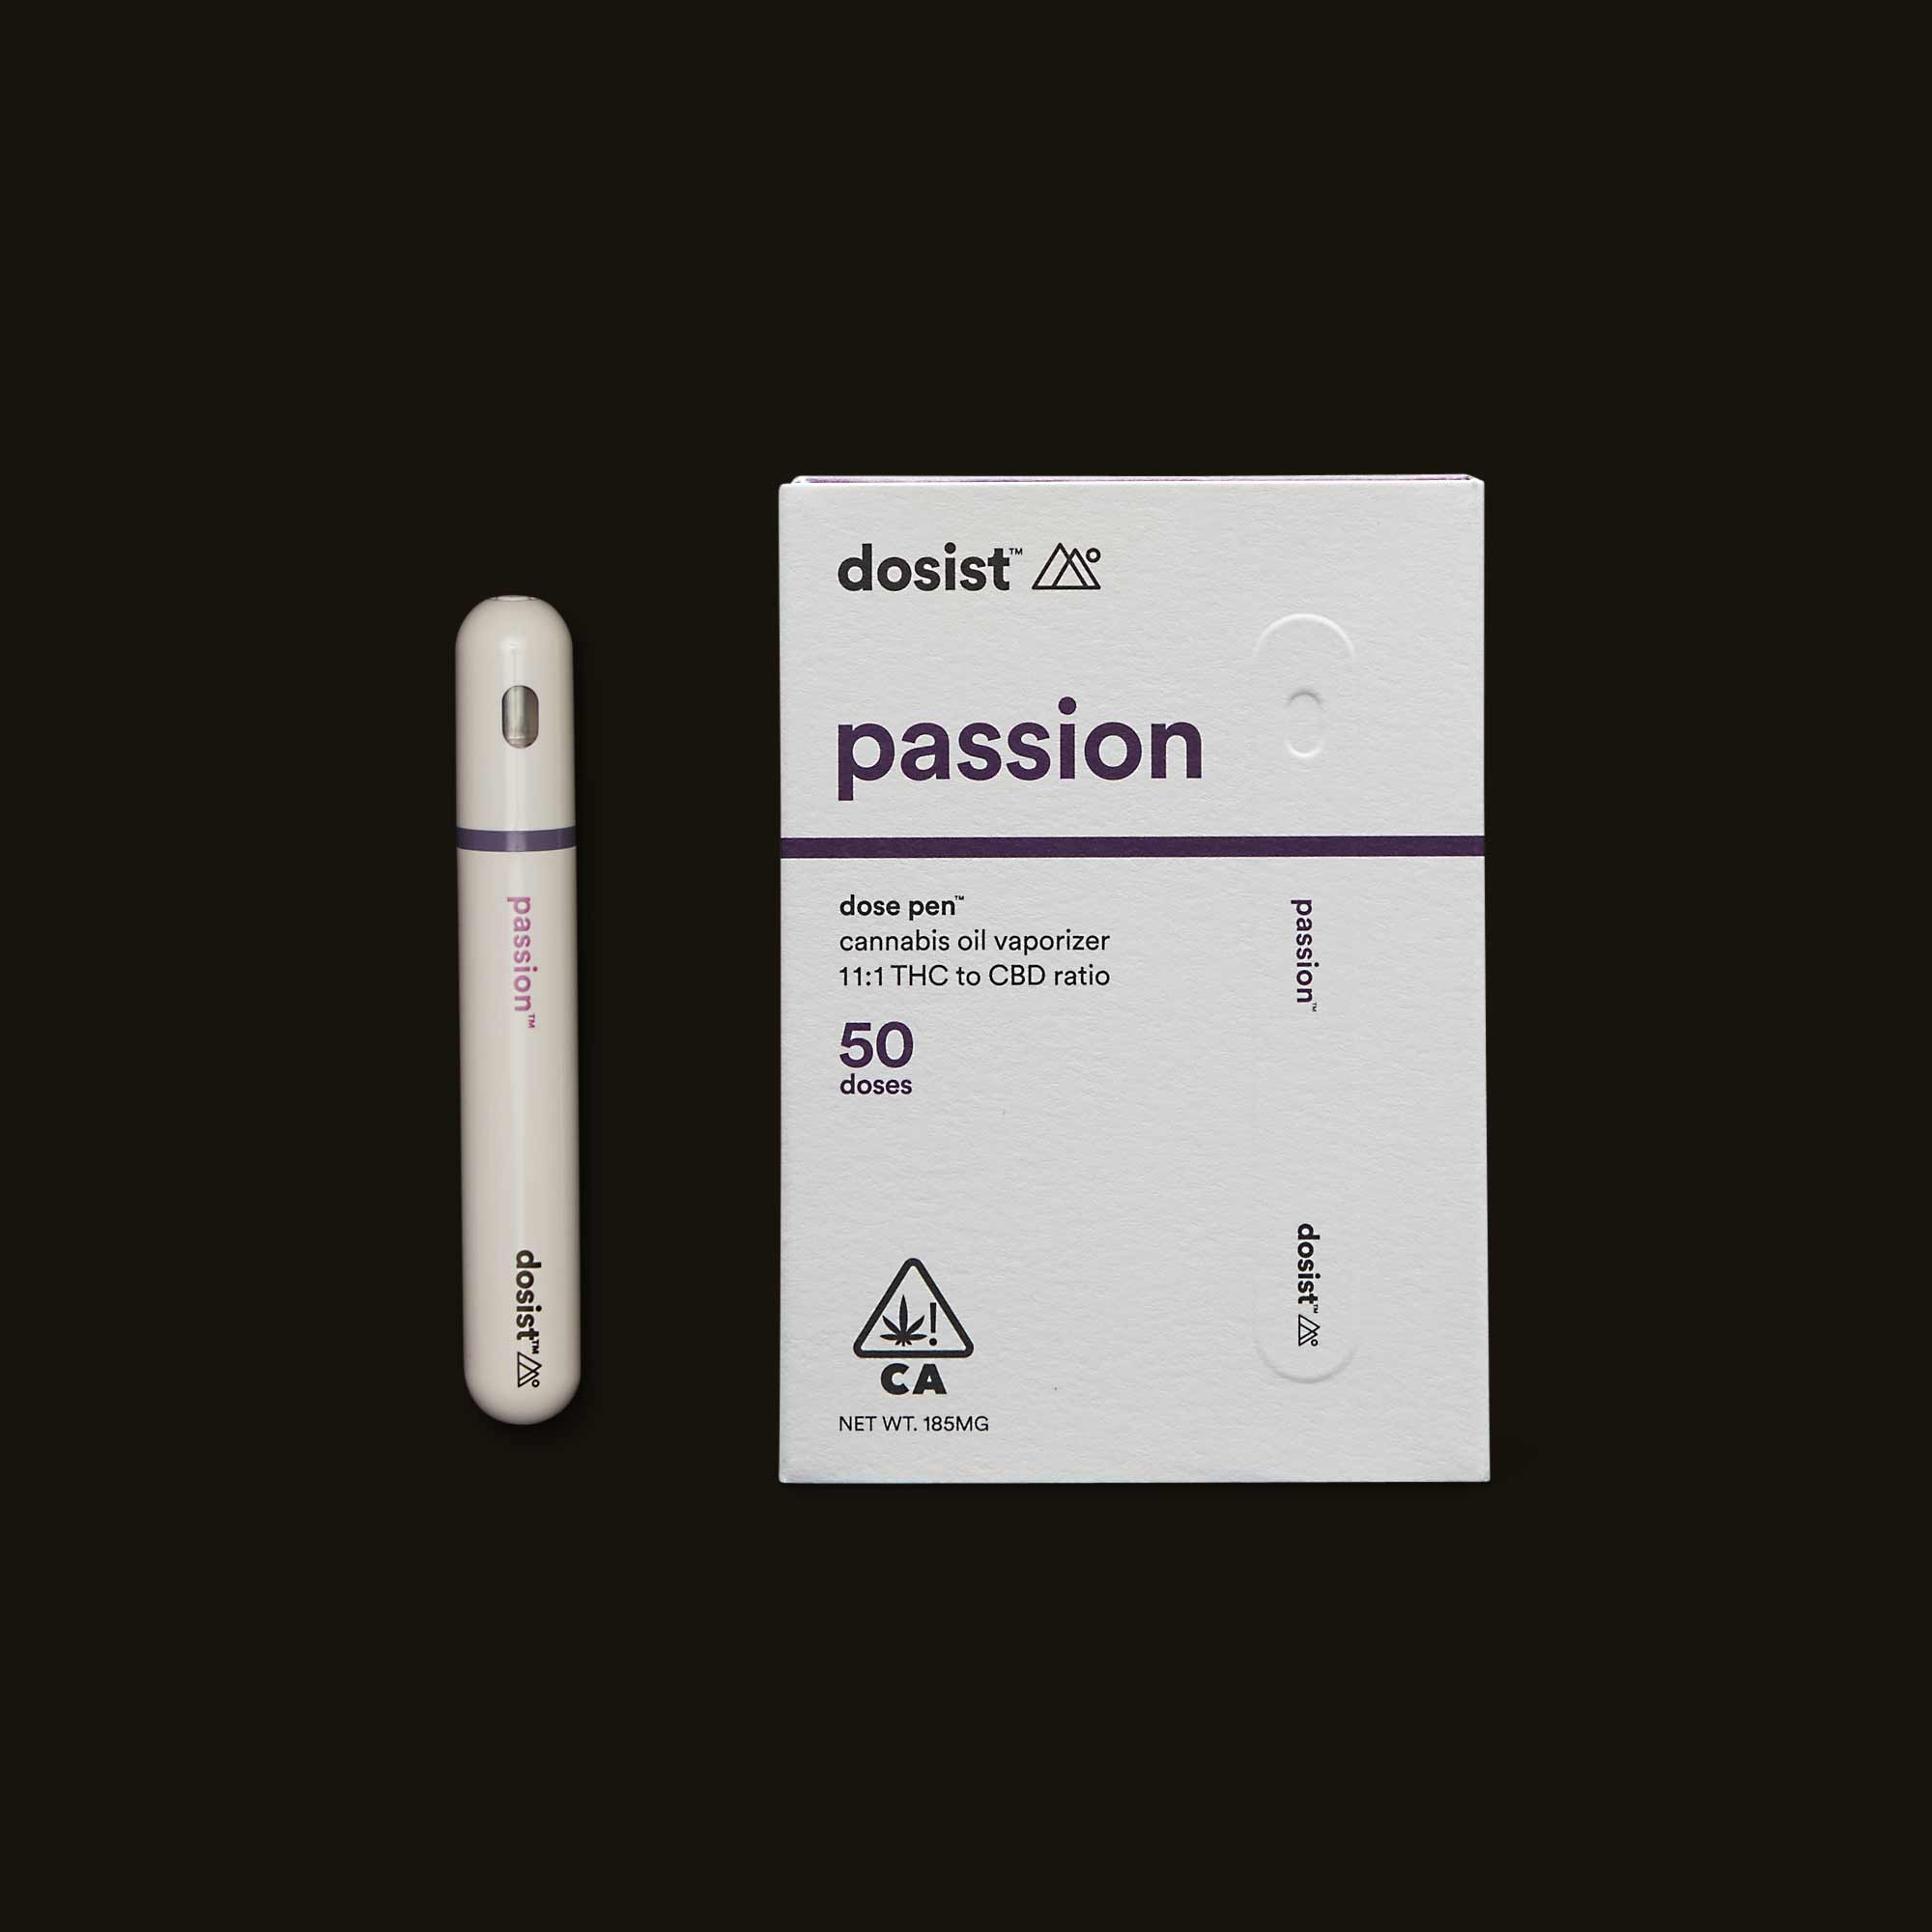 dosist passion easy dose pen